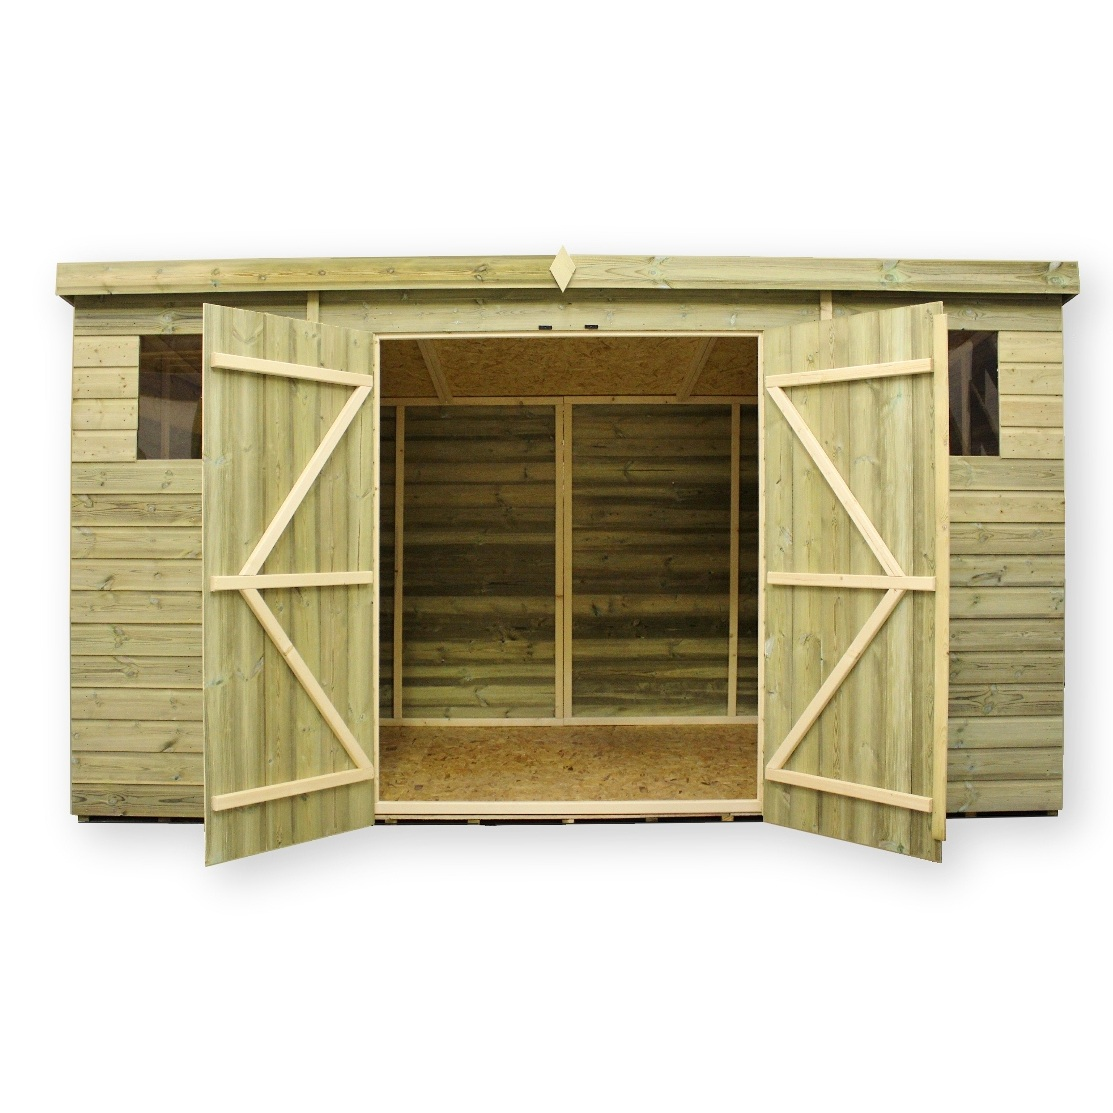 Empire 12X8 Pent Garden Shed With Double Door And Windows